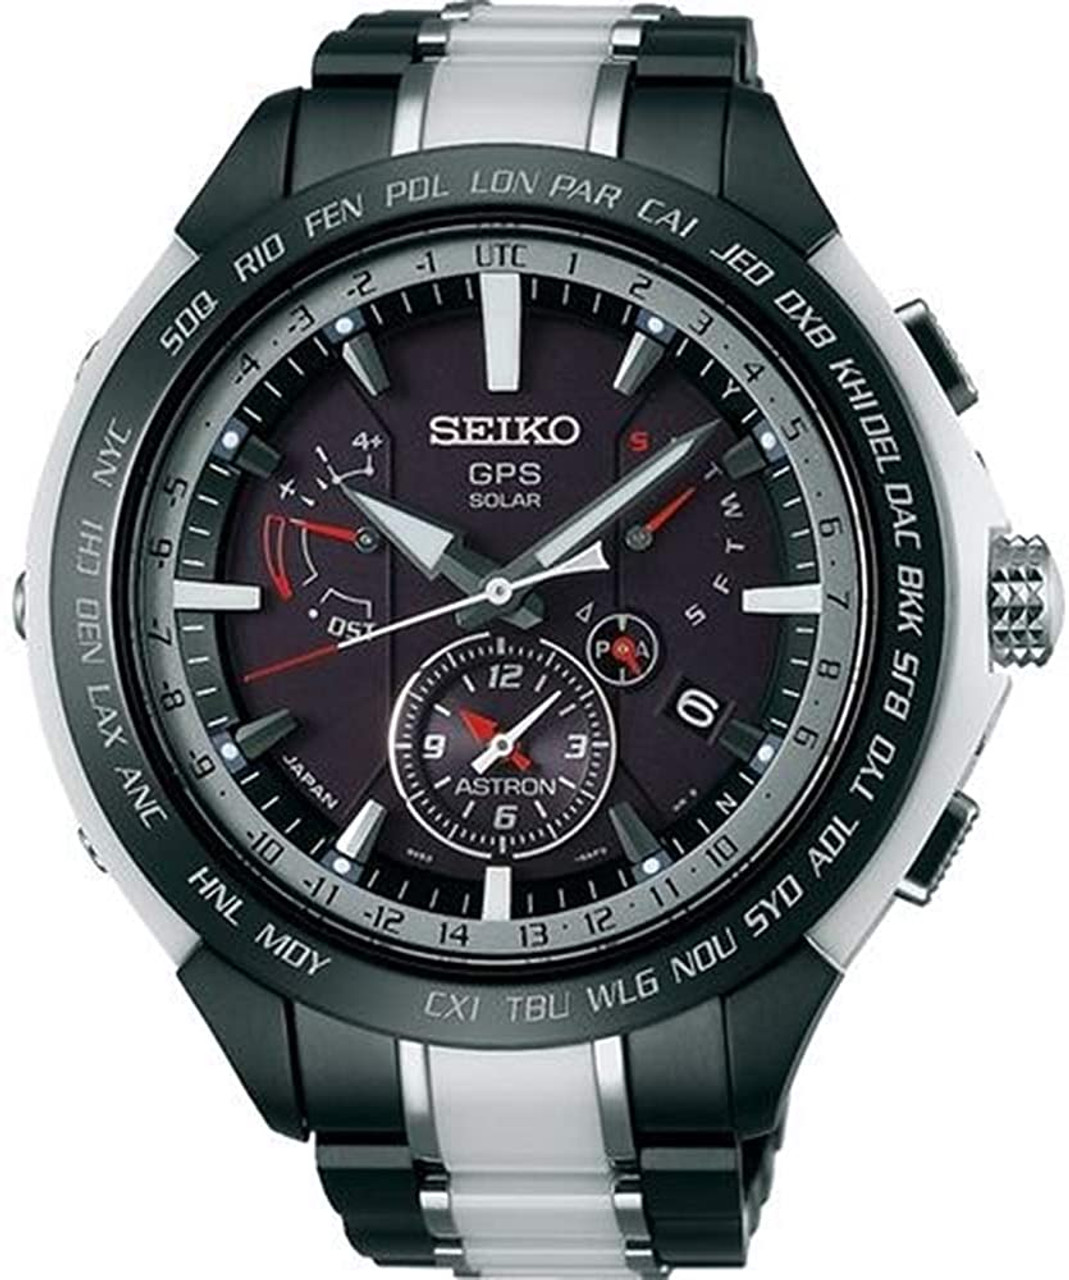 Seiko Astron SBXB071 Japan Limited